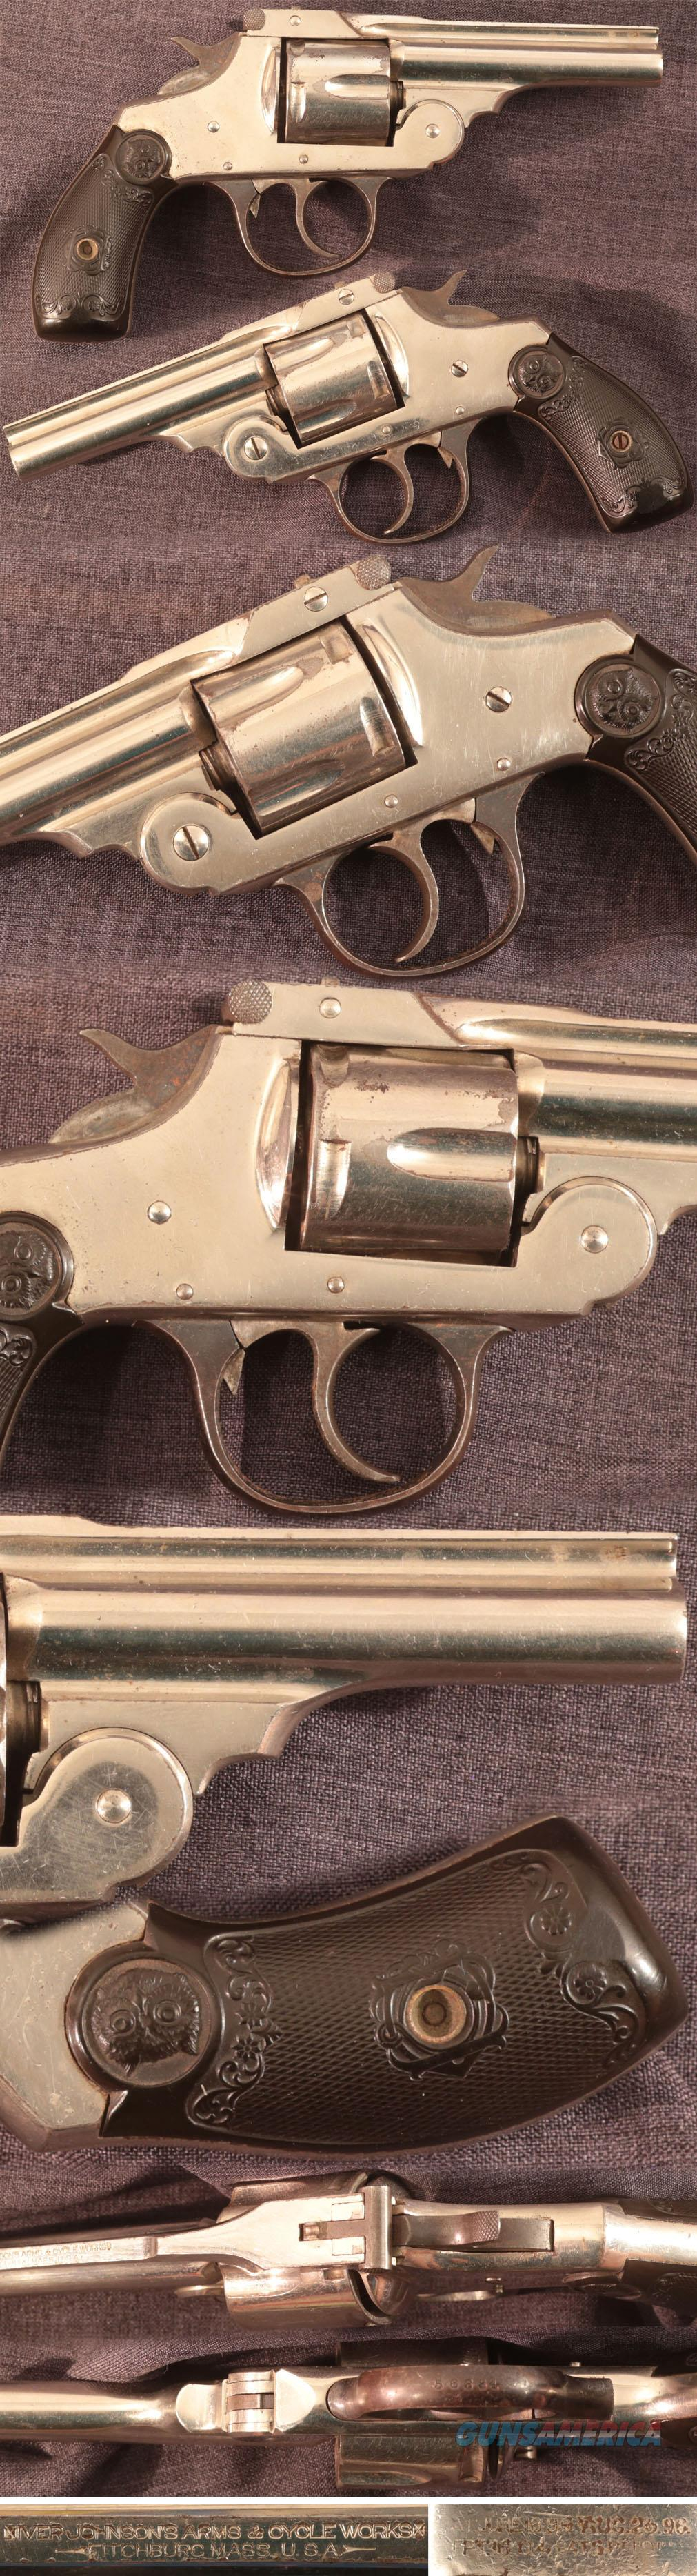 antique Iver Johnson 38 centerfire double action revolver  Guns > Pistols > Iver Johnson Pistols